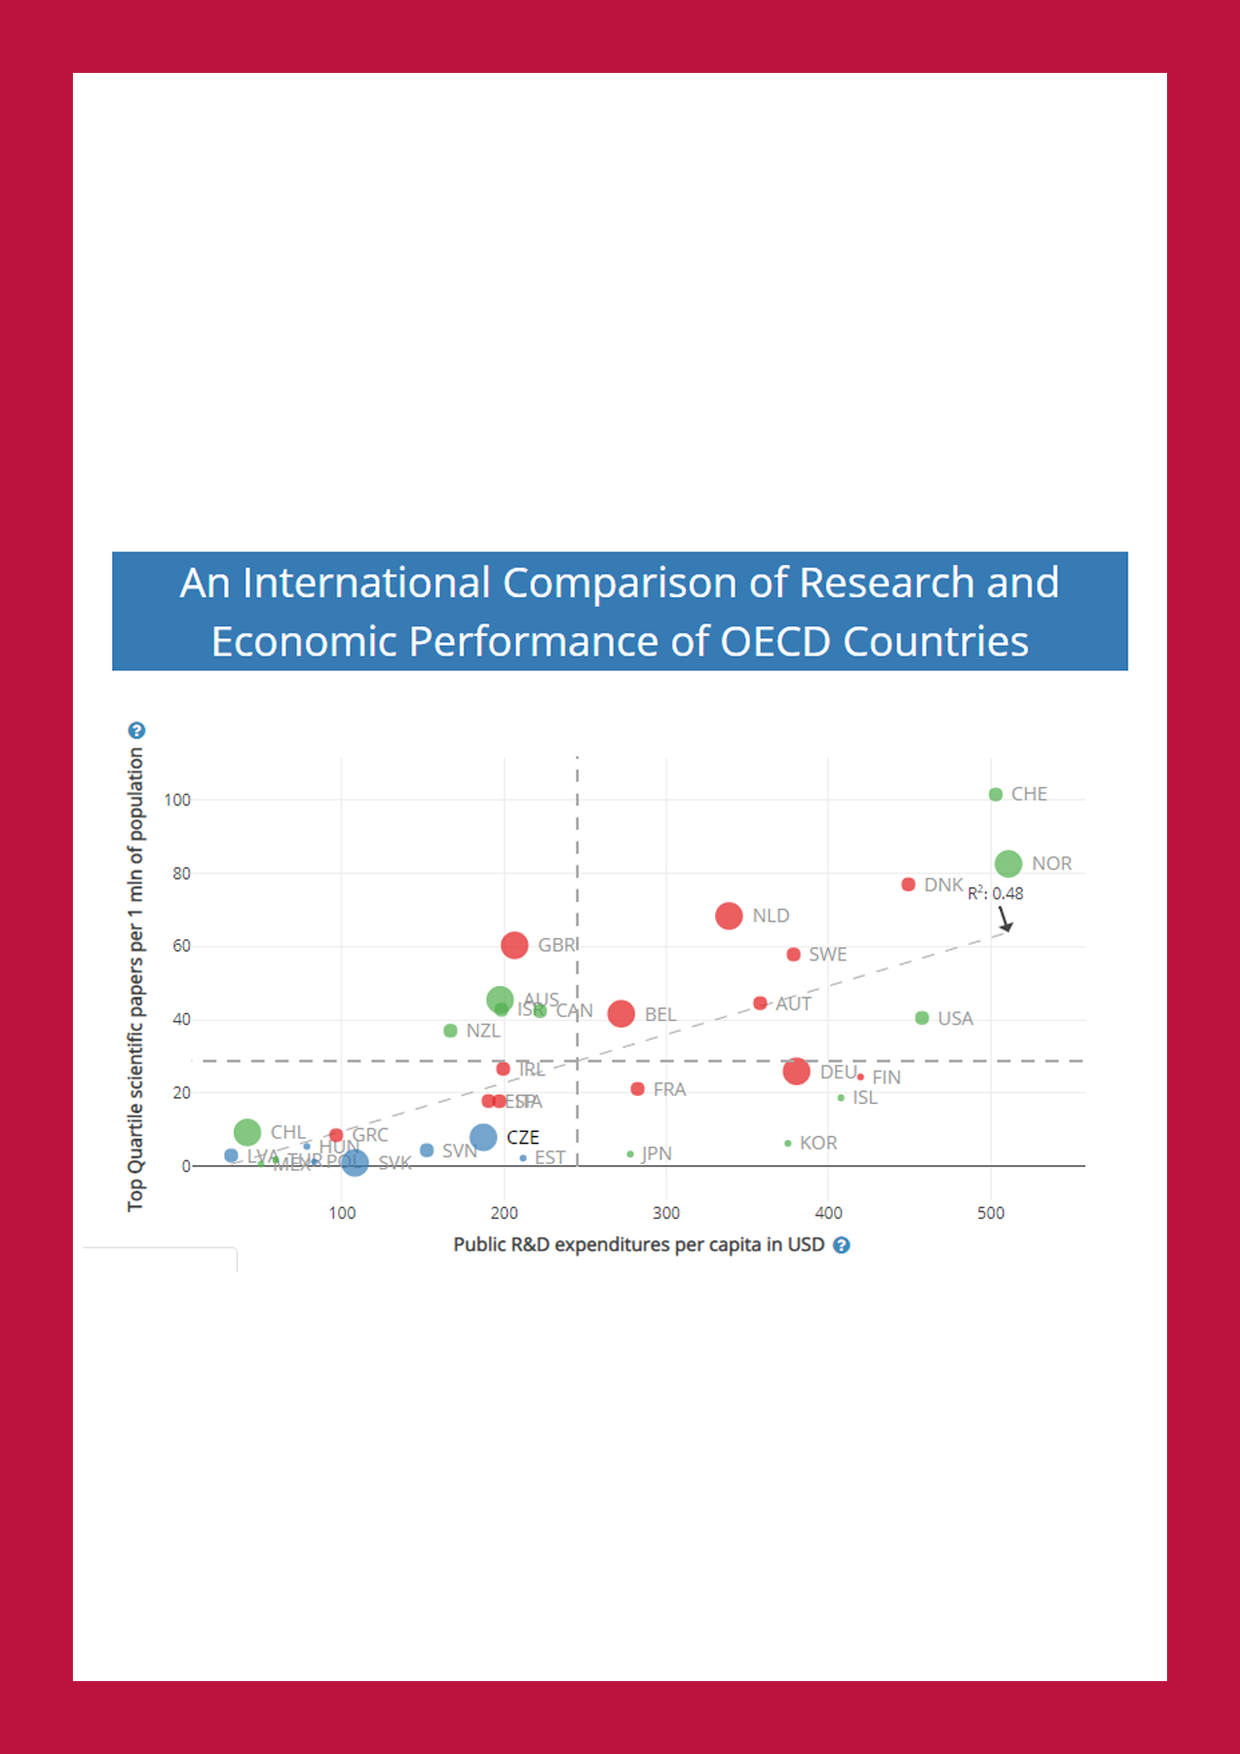 An International Comparison of Economic and Academic Performance of OECD Countries